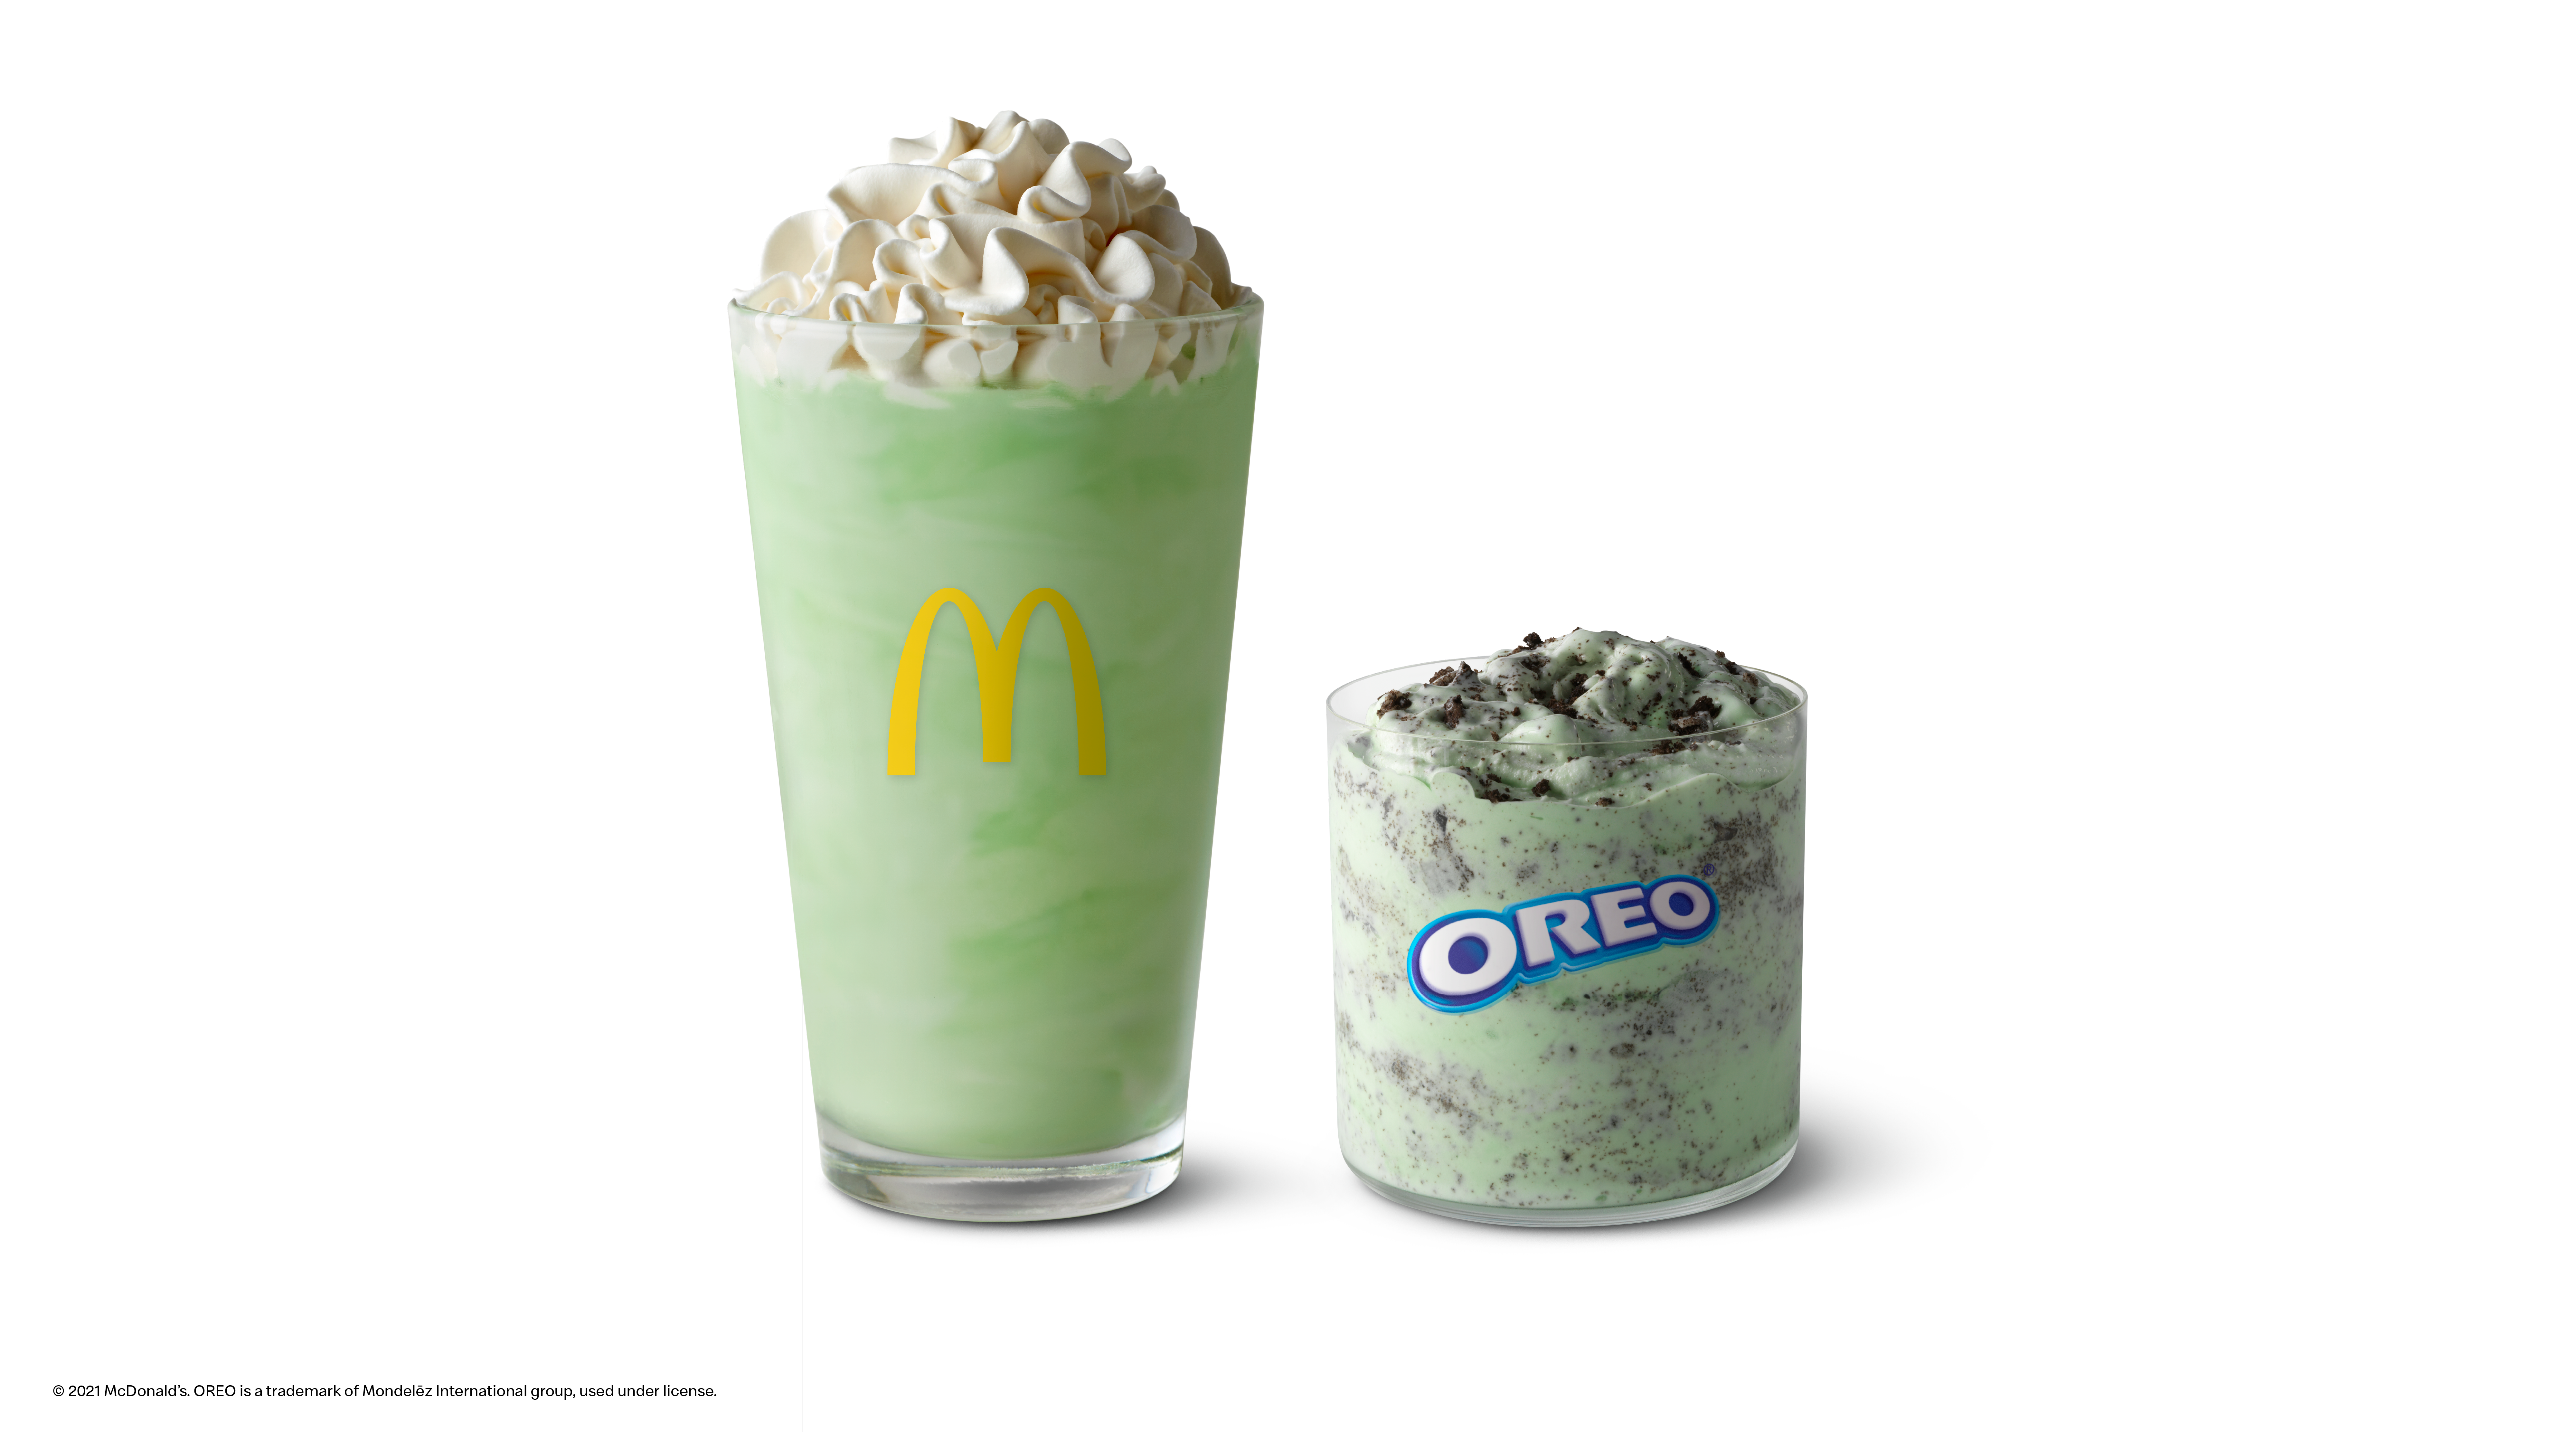 McDonald's Shamrock Shake is coming back. Here's when you can get one and the Oreo Shamrock McFlurry